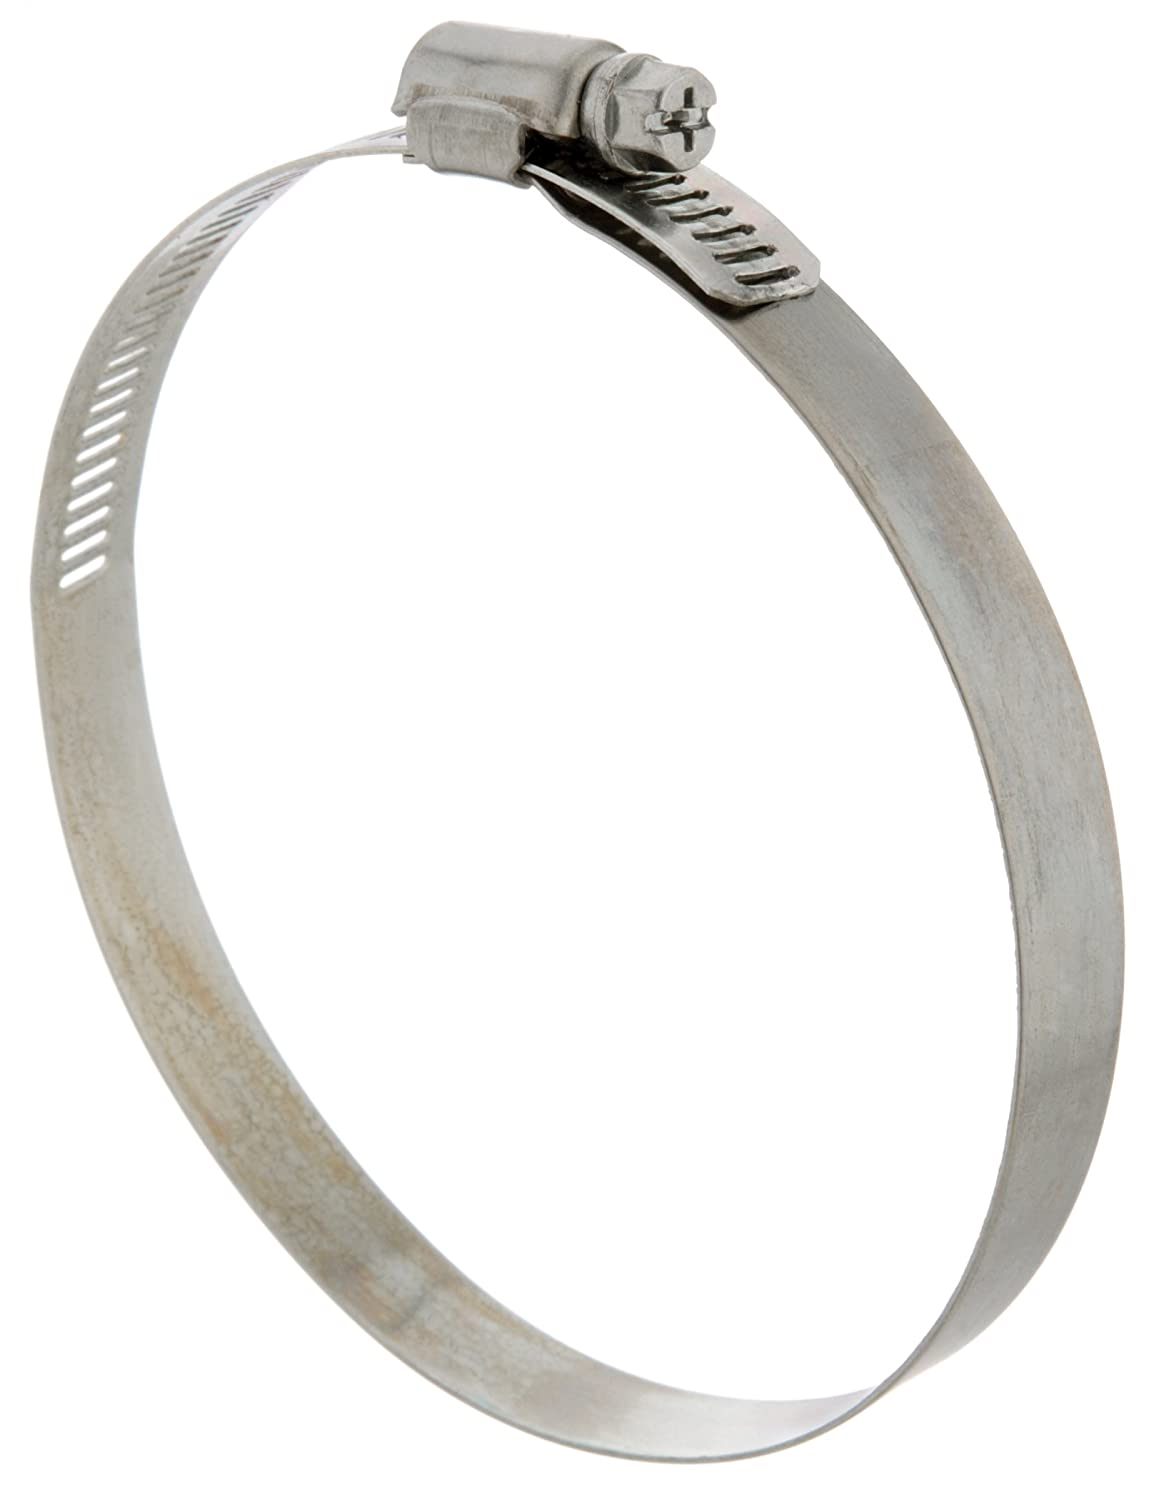 Woodstock W1023 5-Inch Hose Cl& - Vacuum And Dust Collector Hose Cl&s - Amazon.com  sc 1 st  Amazon.com & Woodstock W1023 5-Inch Hose Clamp - Vacuum And Dust Collector Hose ...